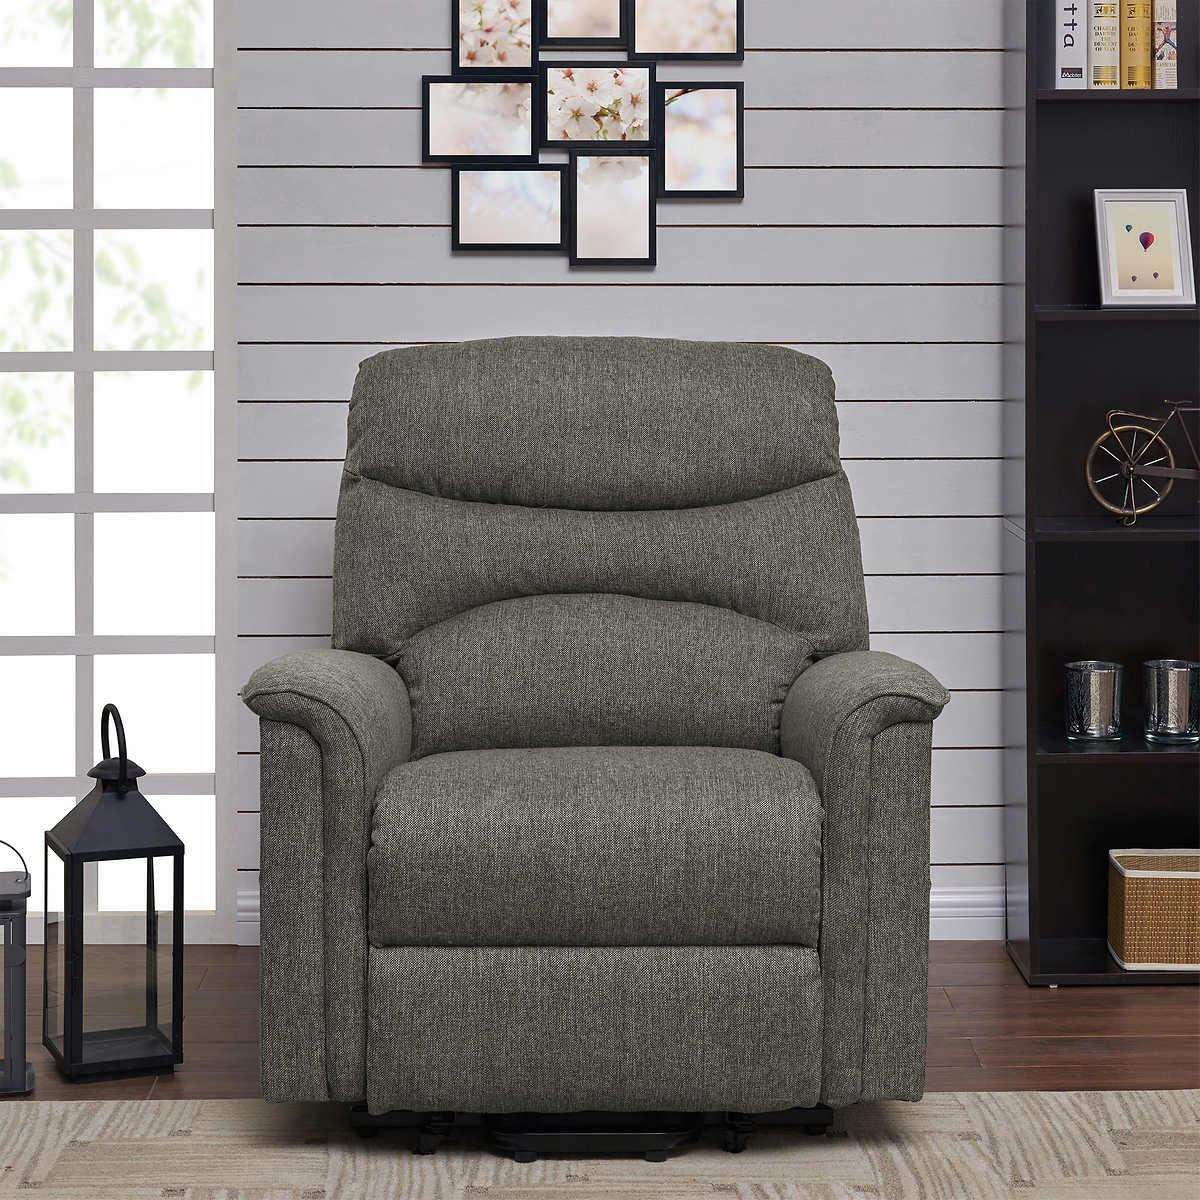 Thomas Fabric ProLounger Lift Chair Chair, Living room